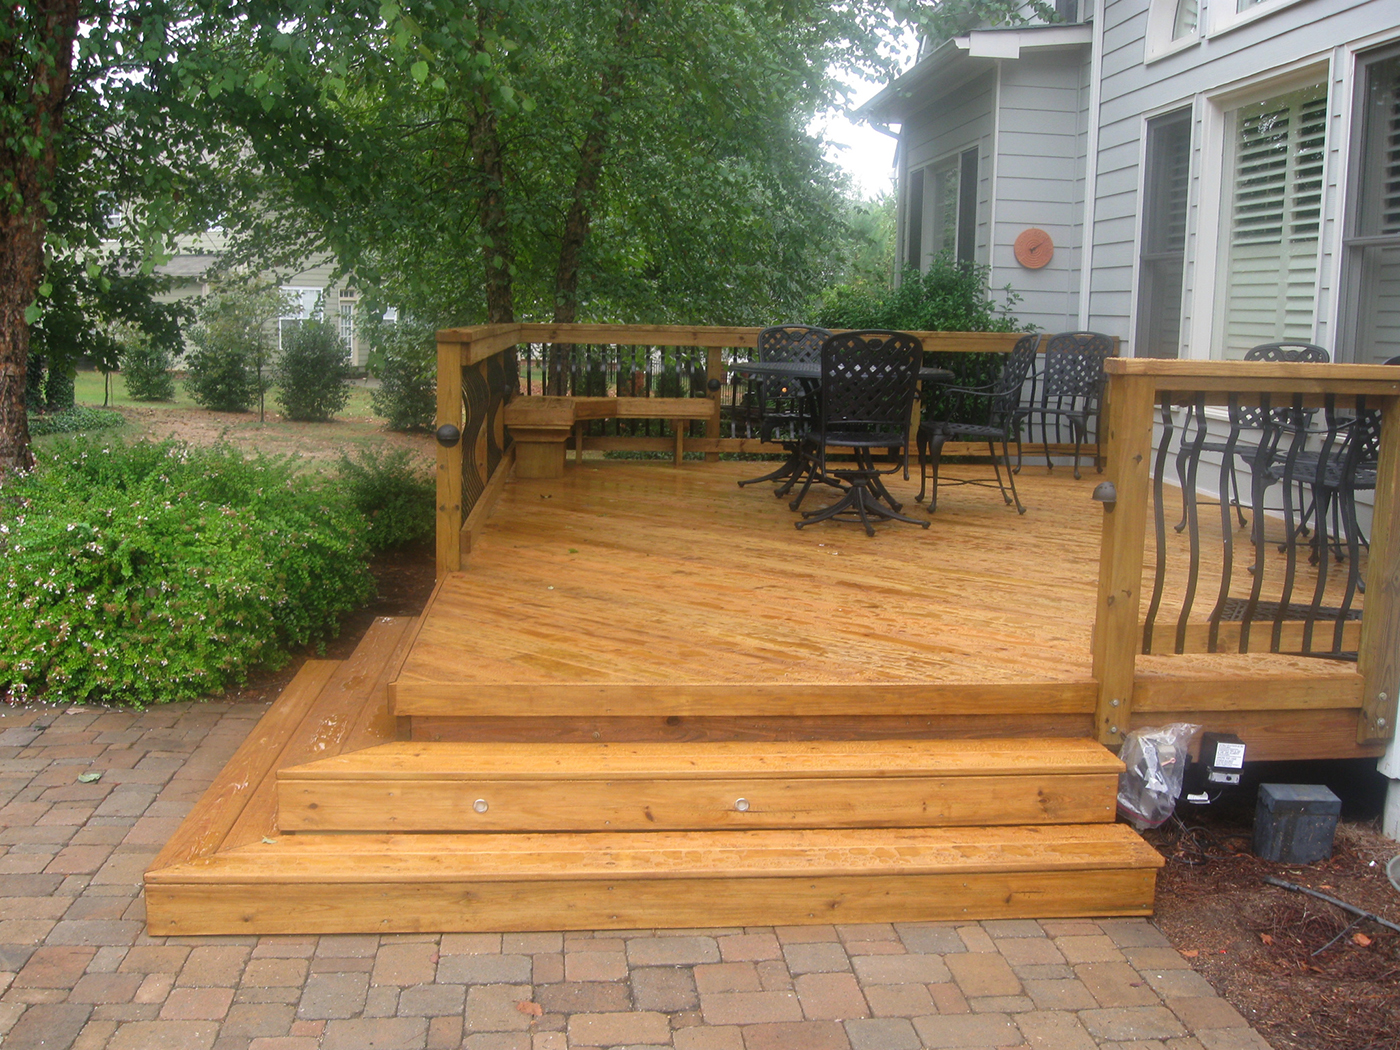 Bon Why Not Build A Wood Deck?